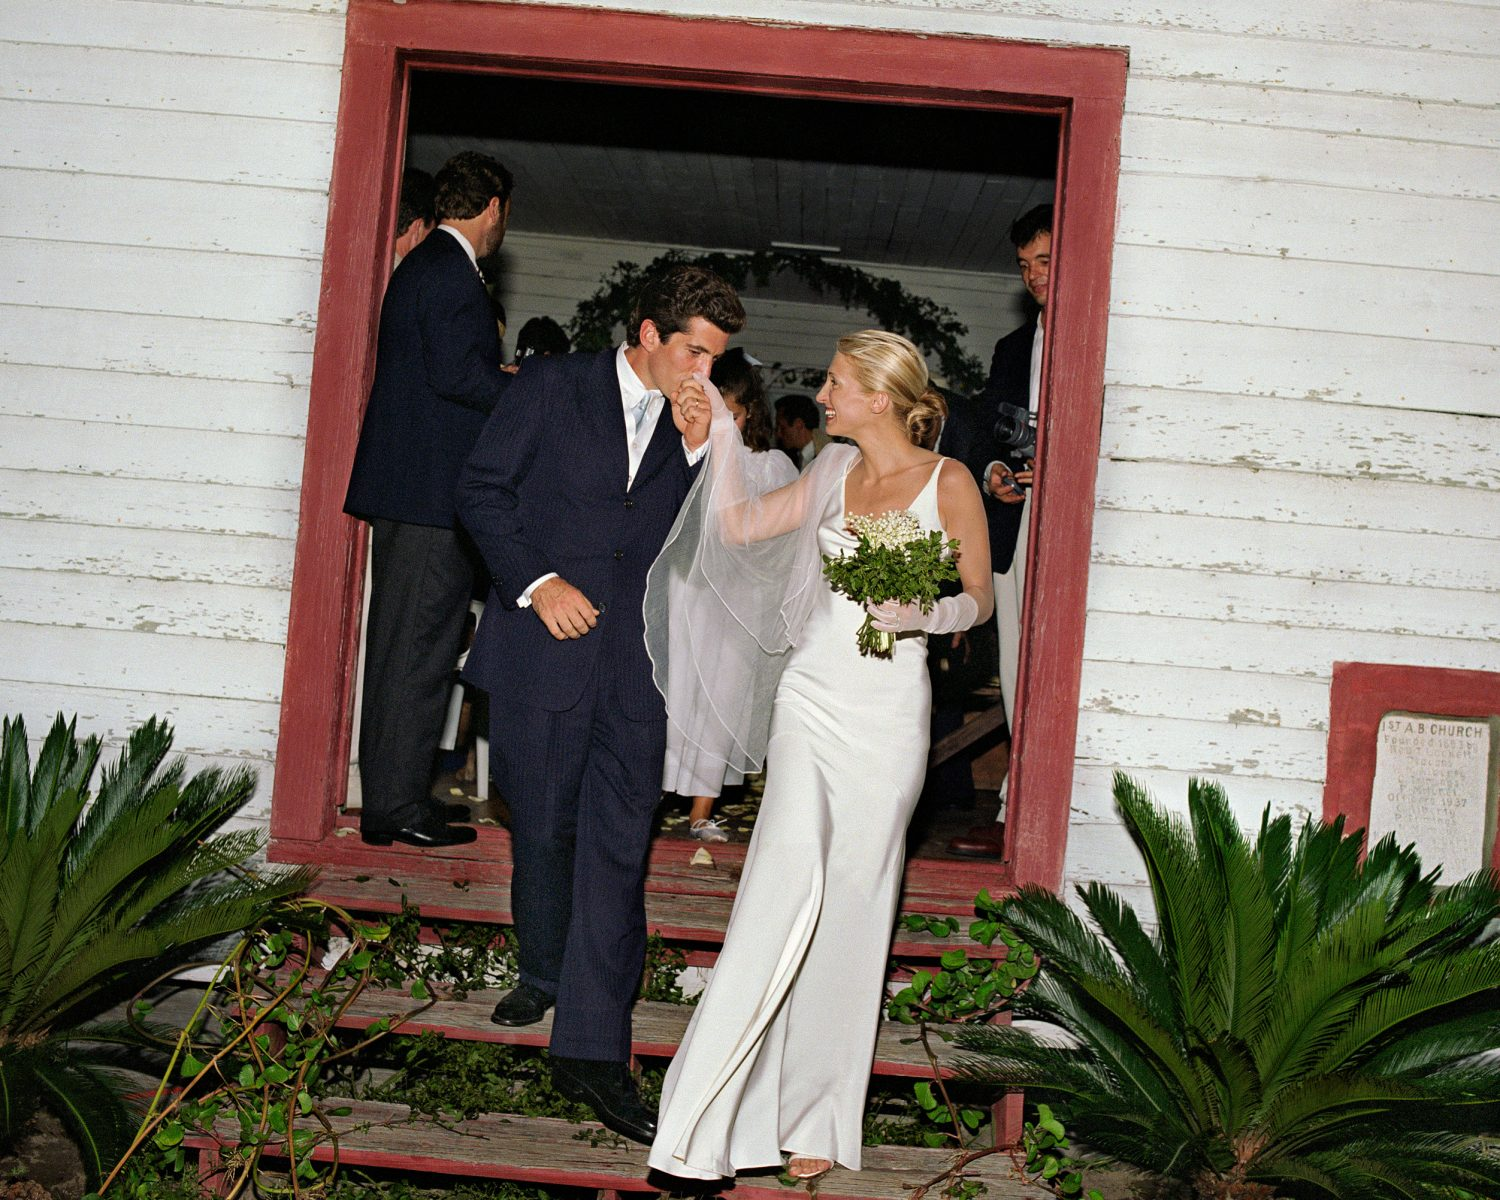 Jfk Jr And Carolyn Bessette S Wedding Photographer Looks Back 20